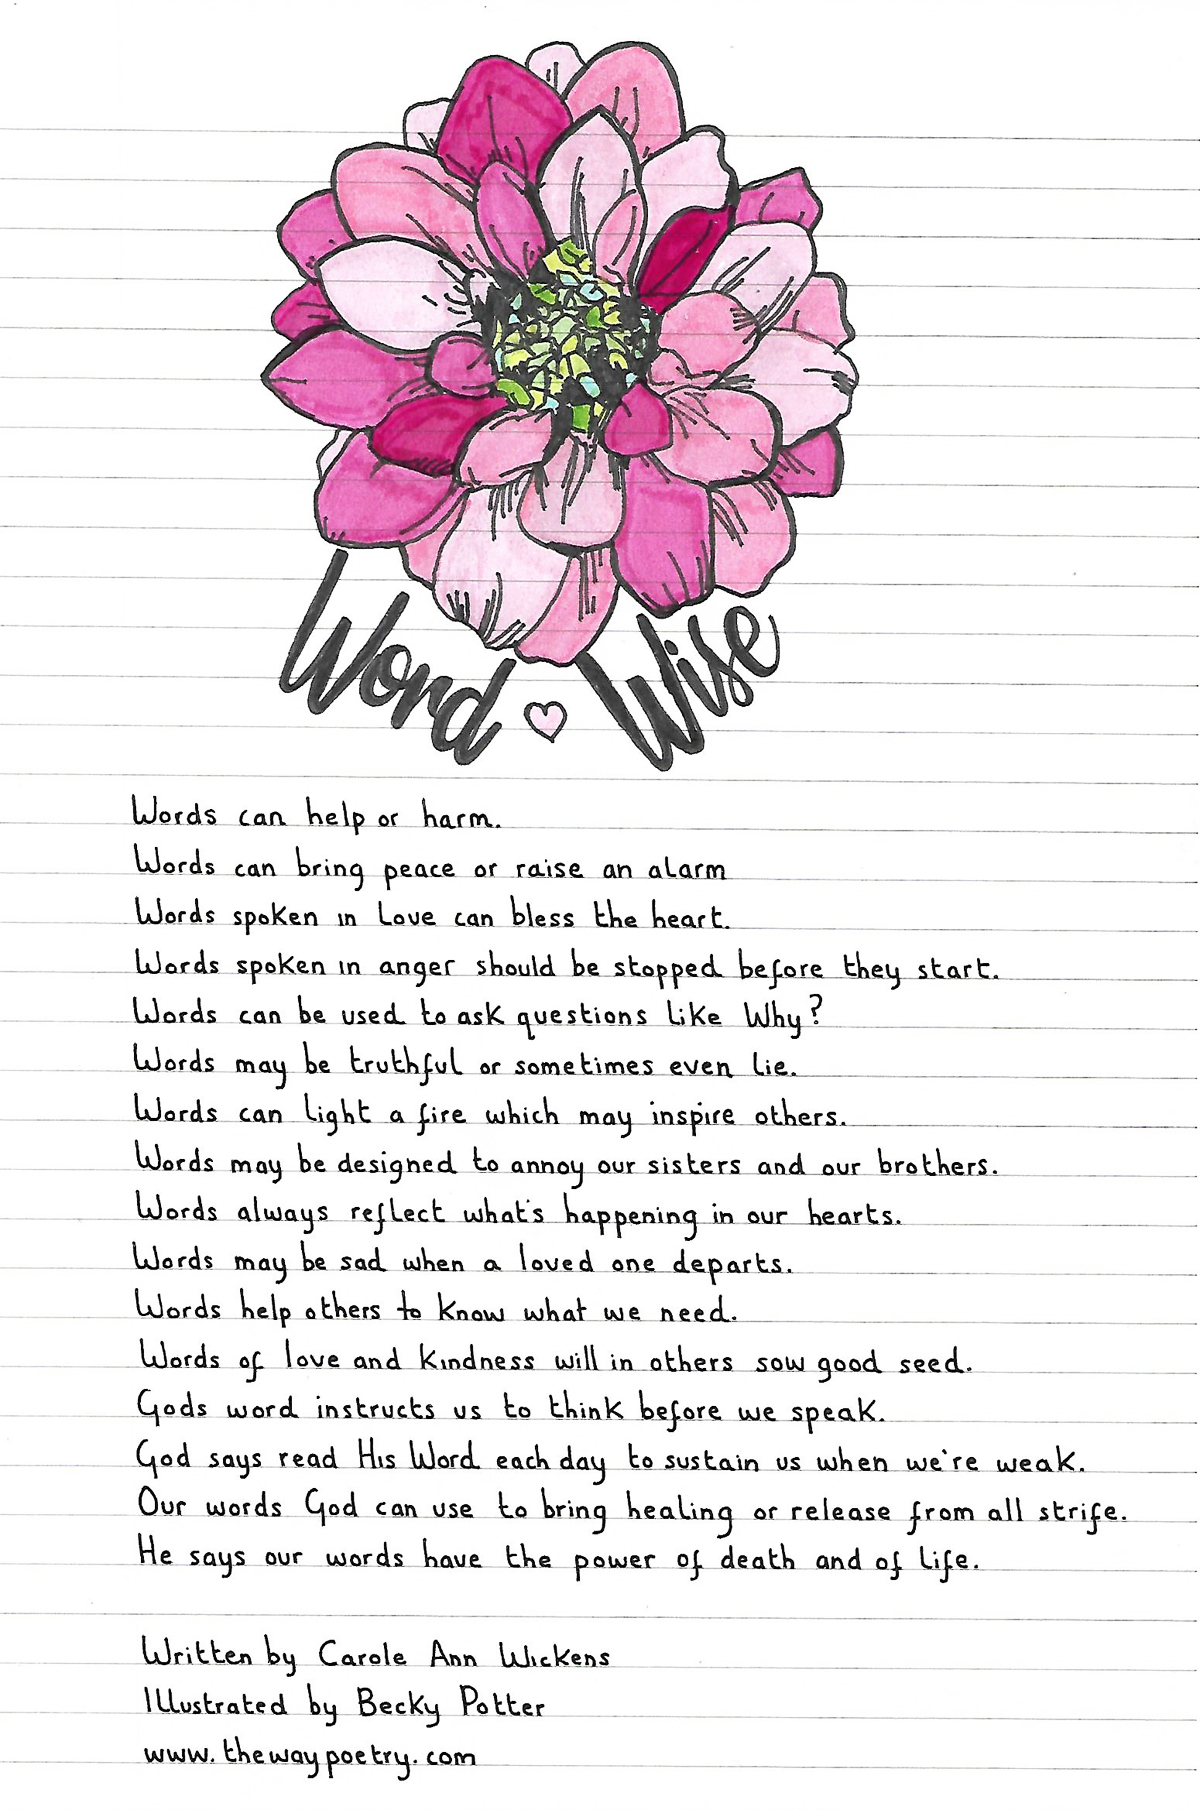 Word Wise by Carole Ann Wickens